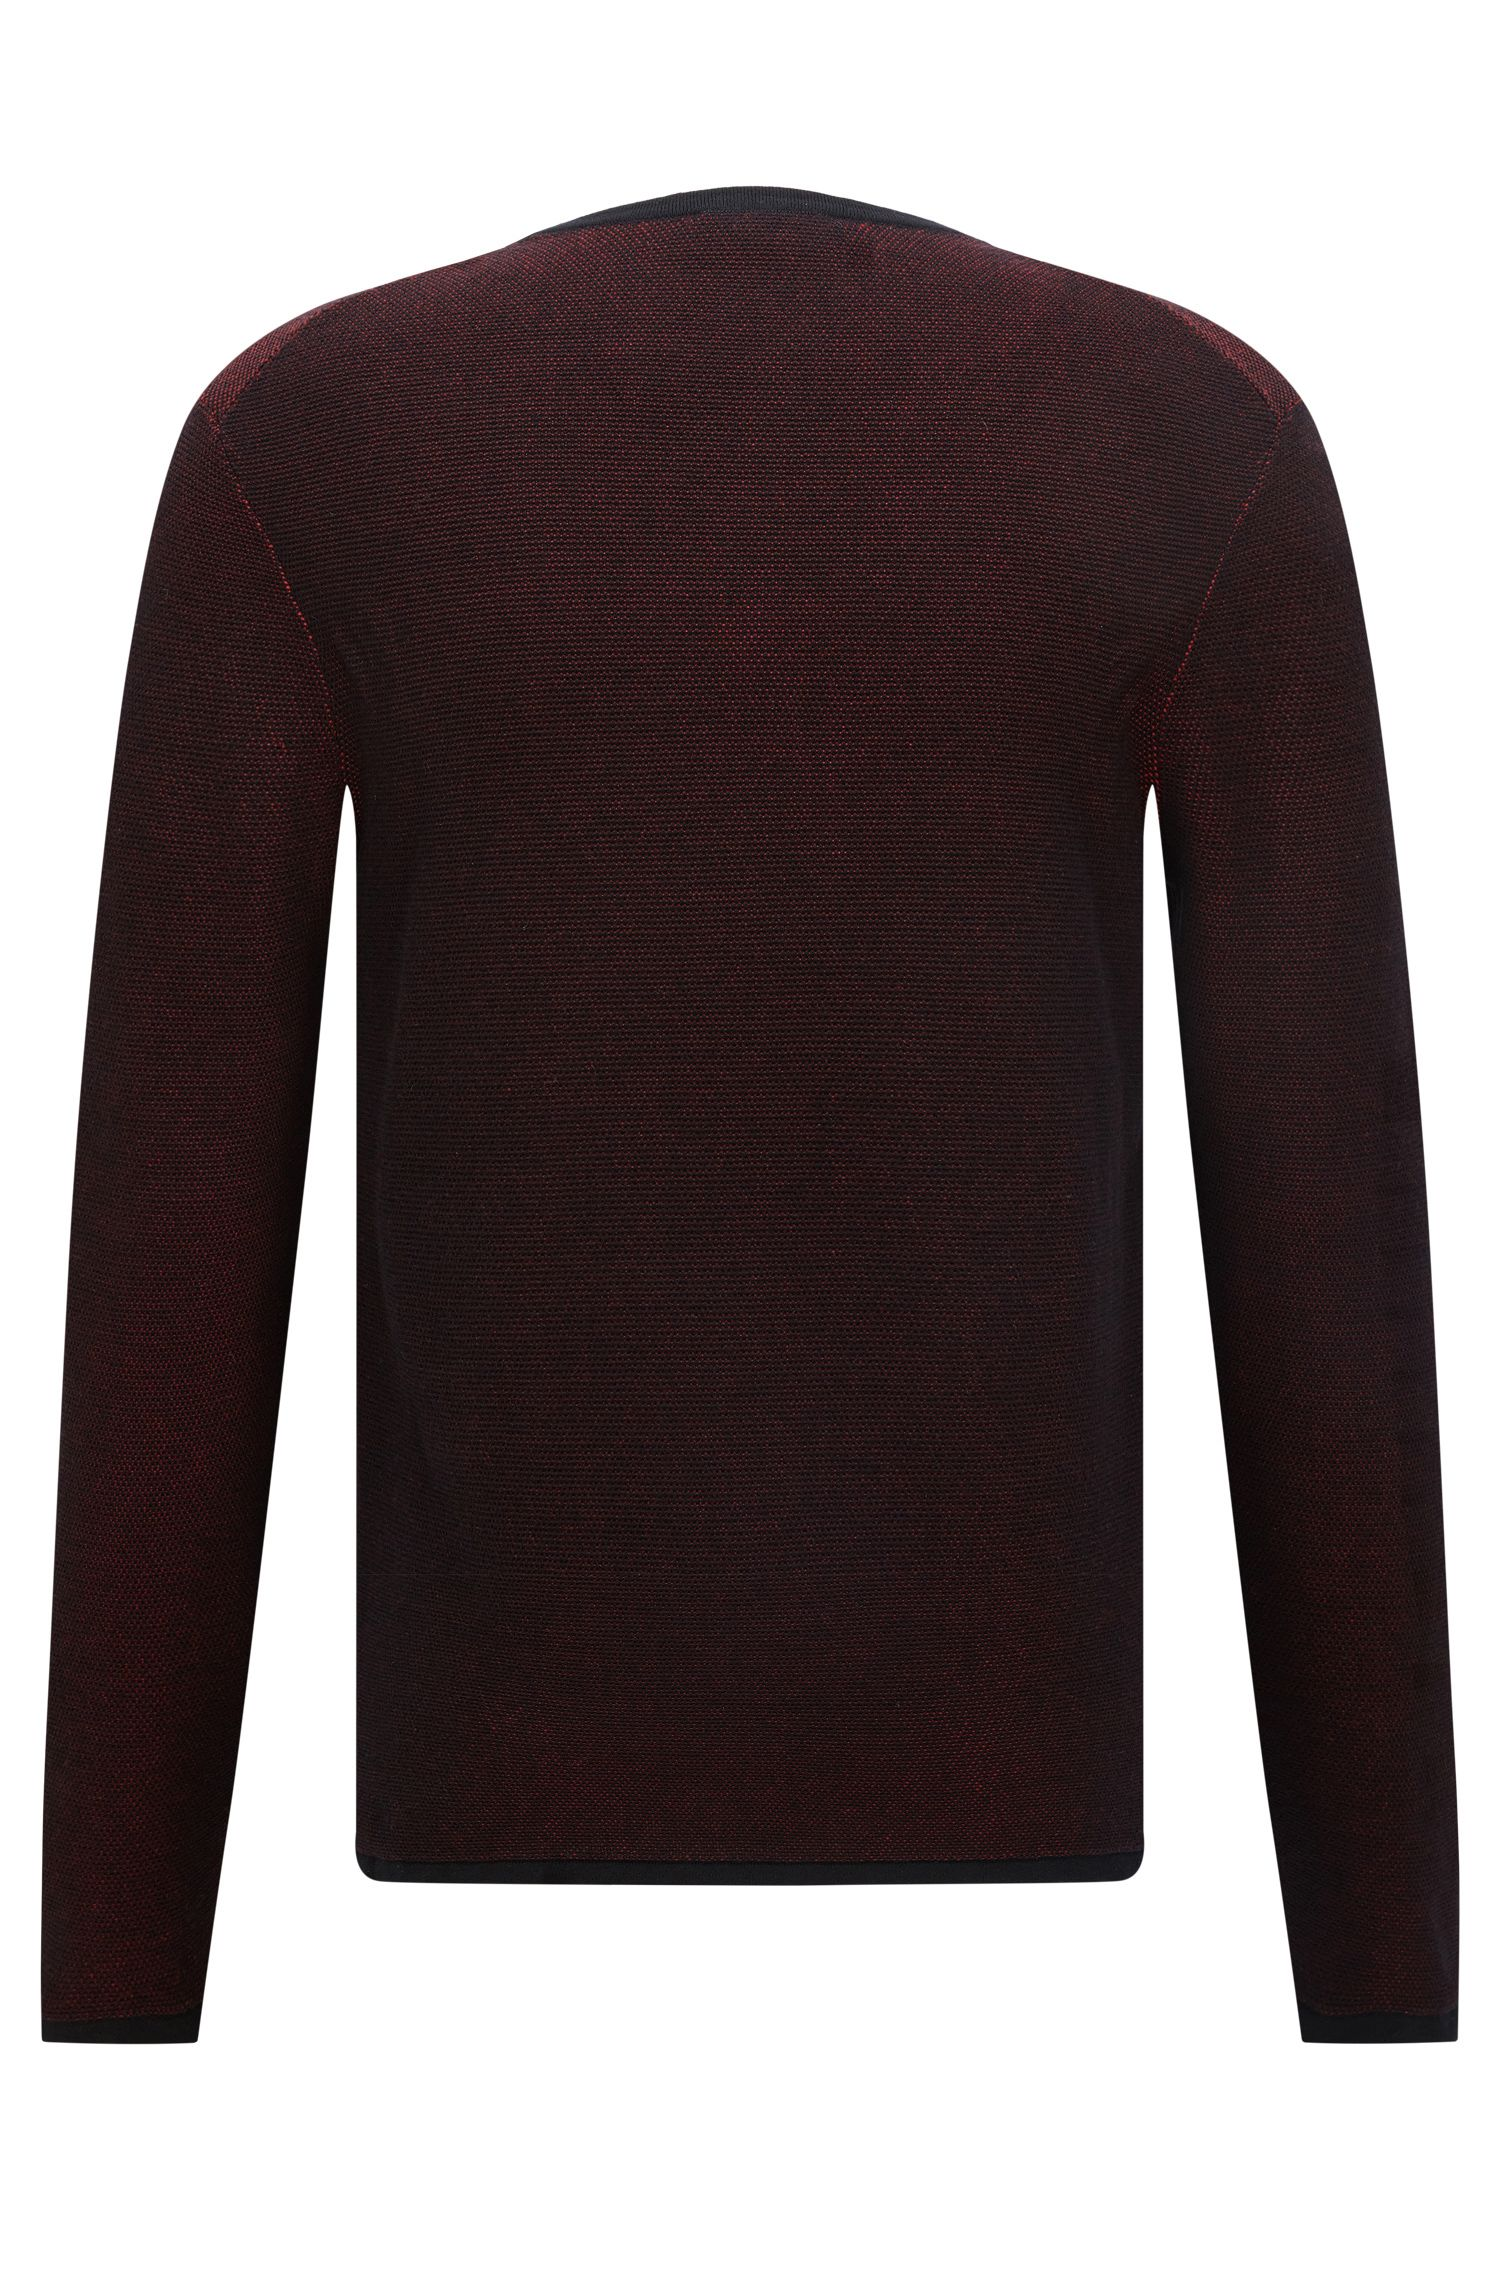 'Rime' | Relaxed Fit, Cotton Blend Sweater